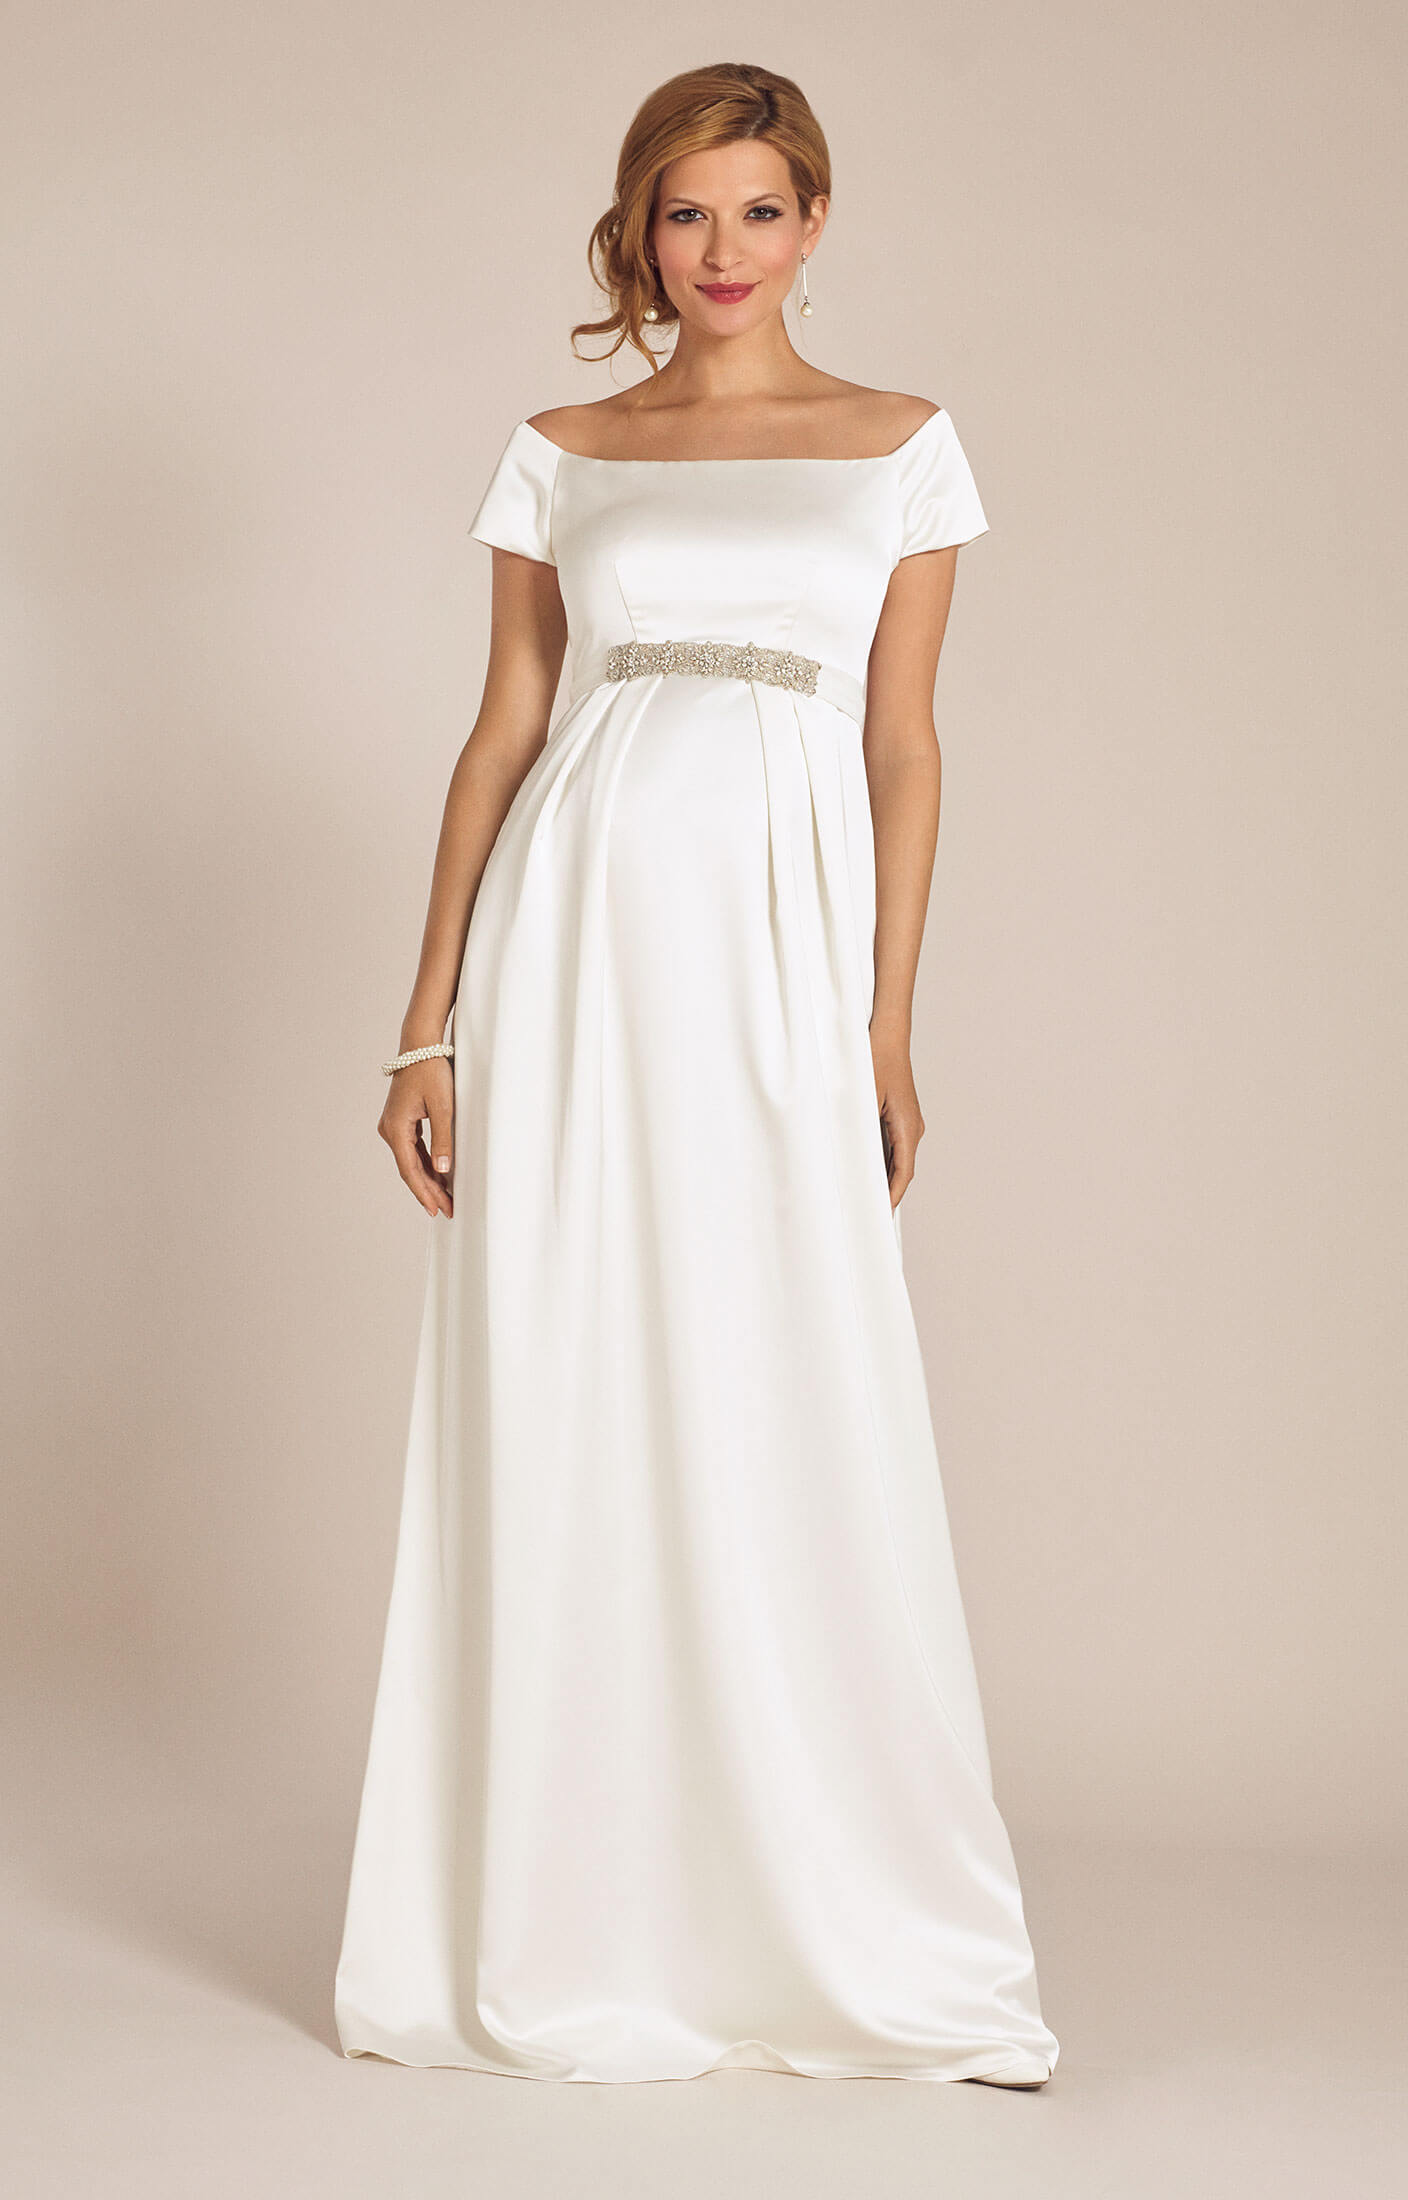 Aria maternity wedding gown ivory maternity wedding for Maternity dress for a wedding